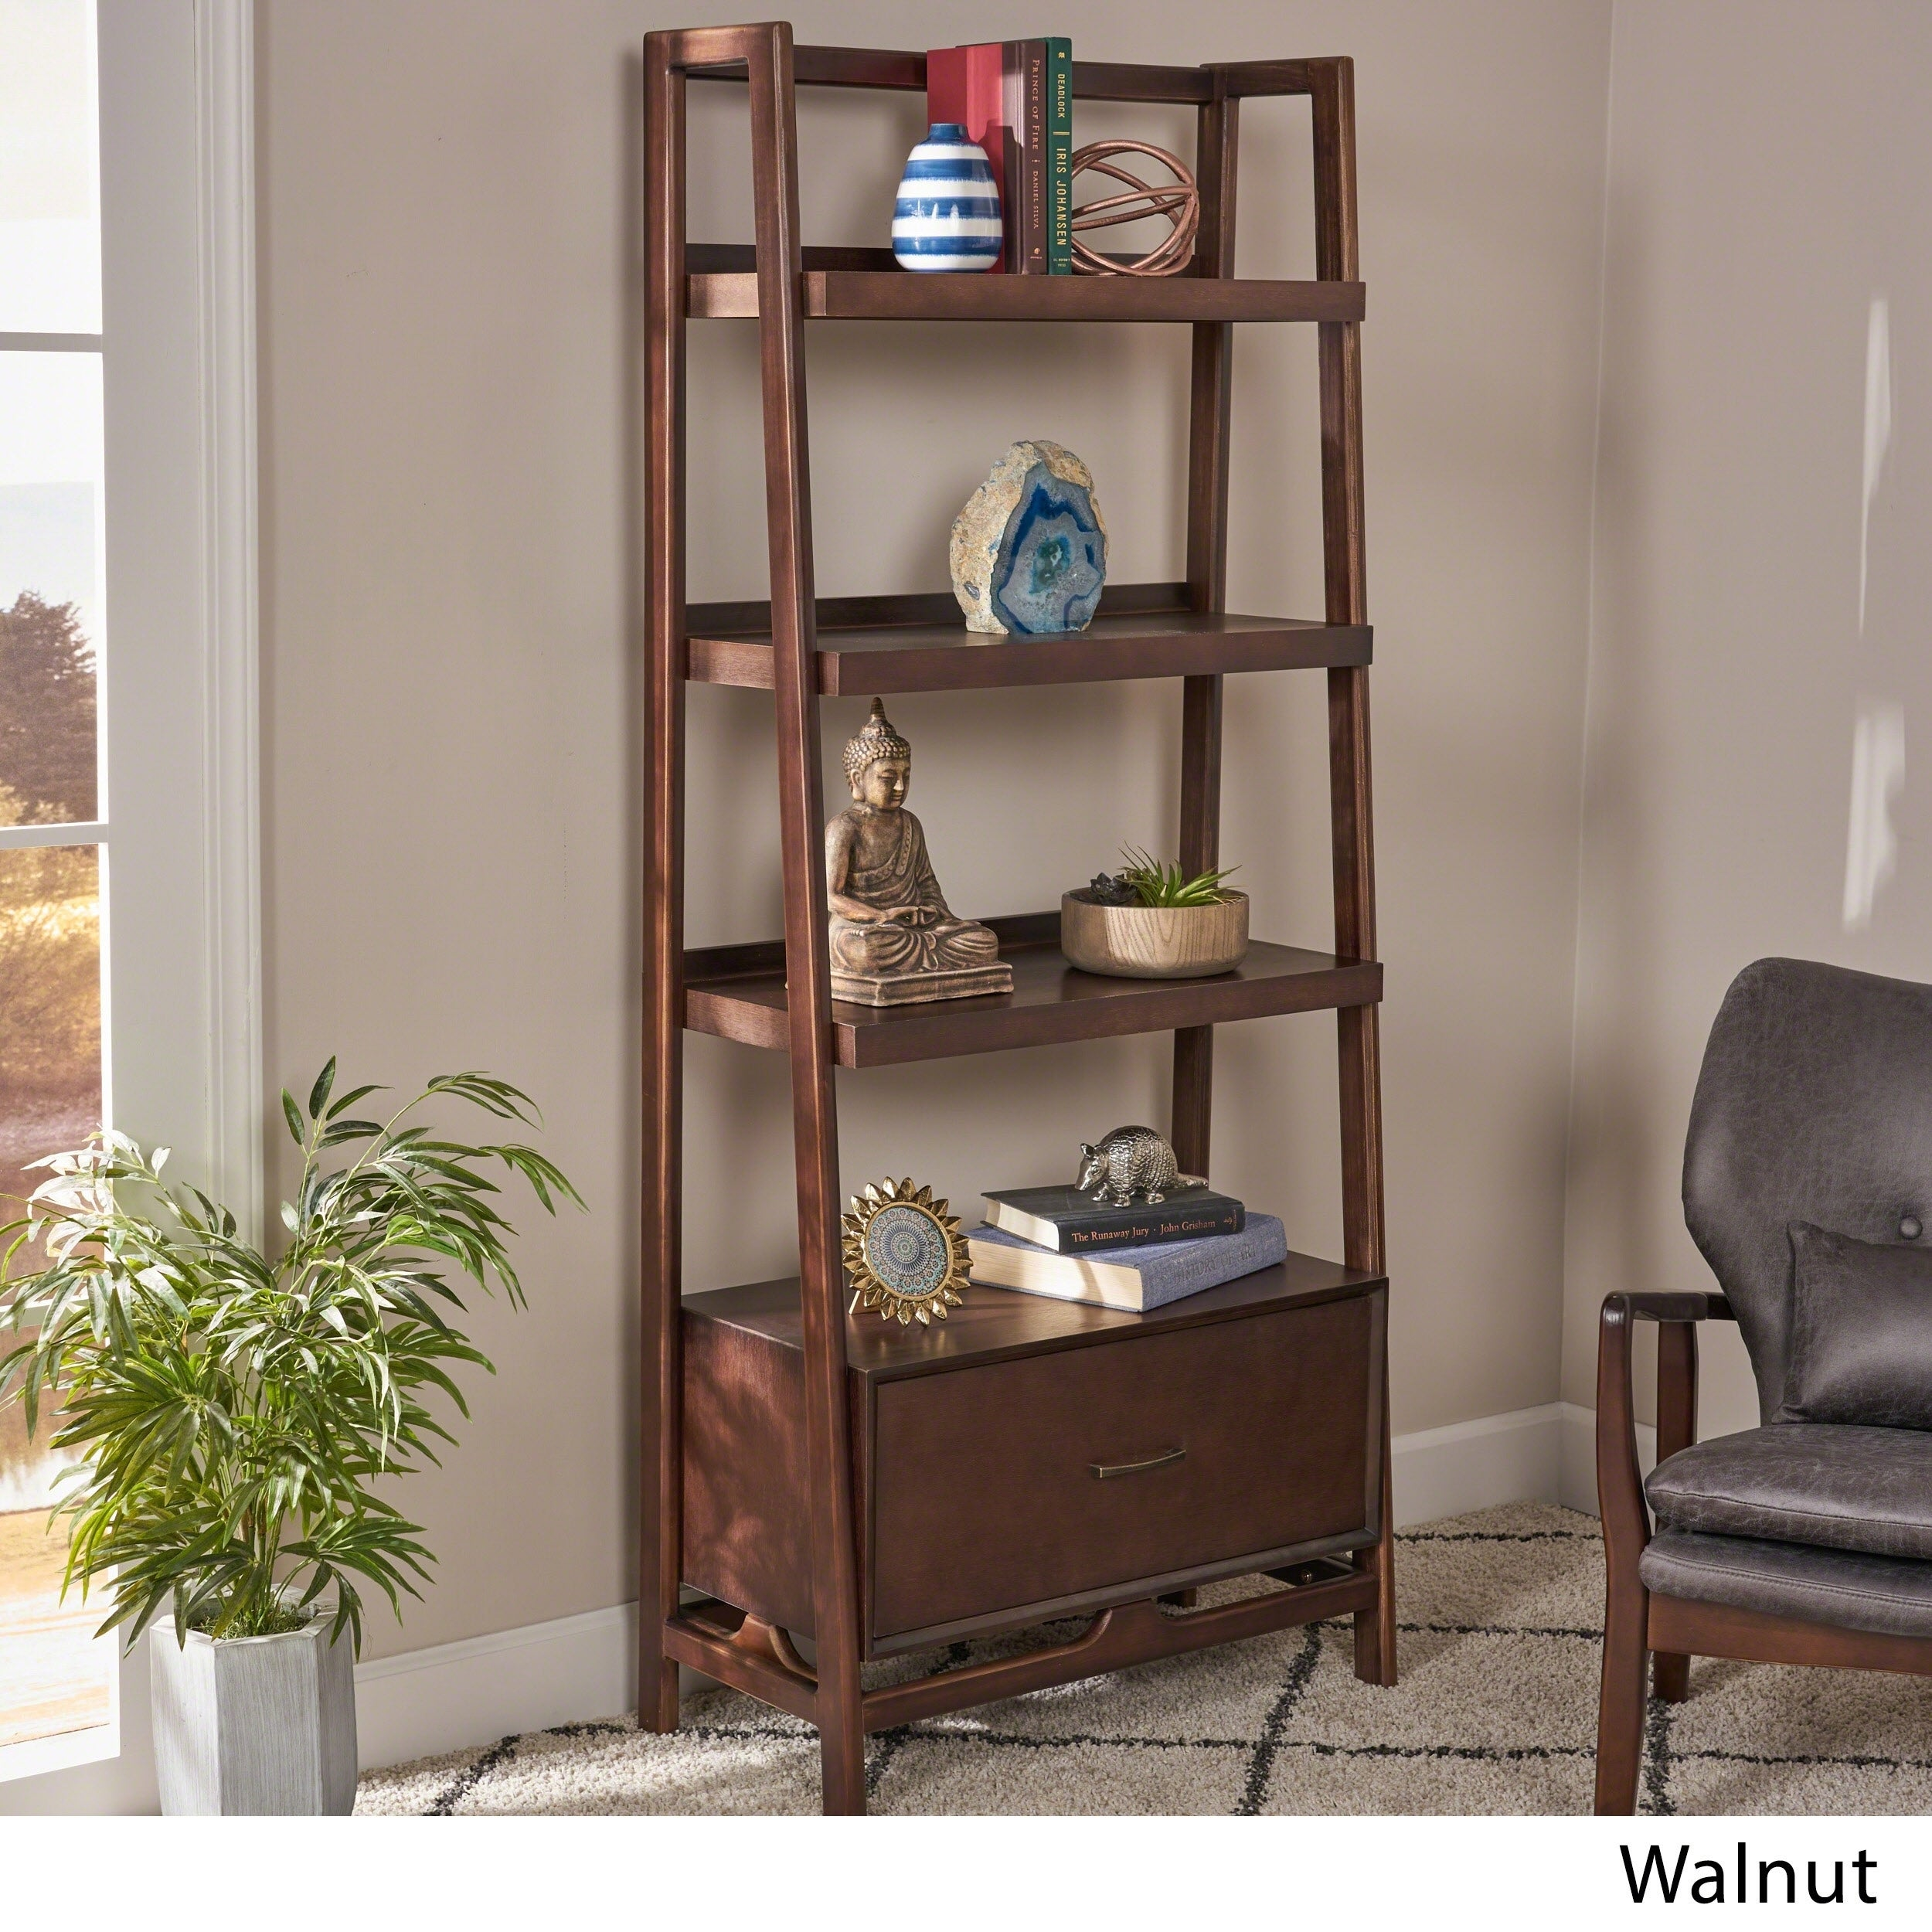 Brantly Mid Century Modern 4 Shelf Faux Wood Bookcase With Storage Drawer By Christopher Knight Home N A